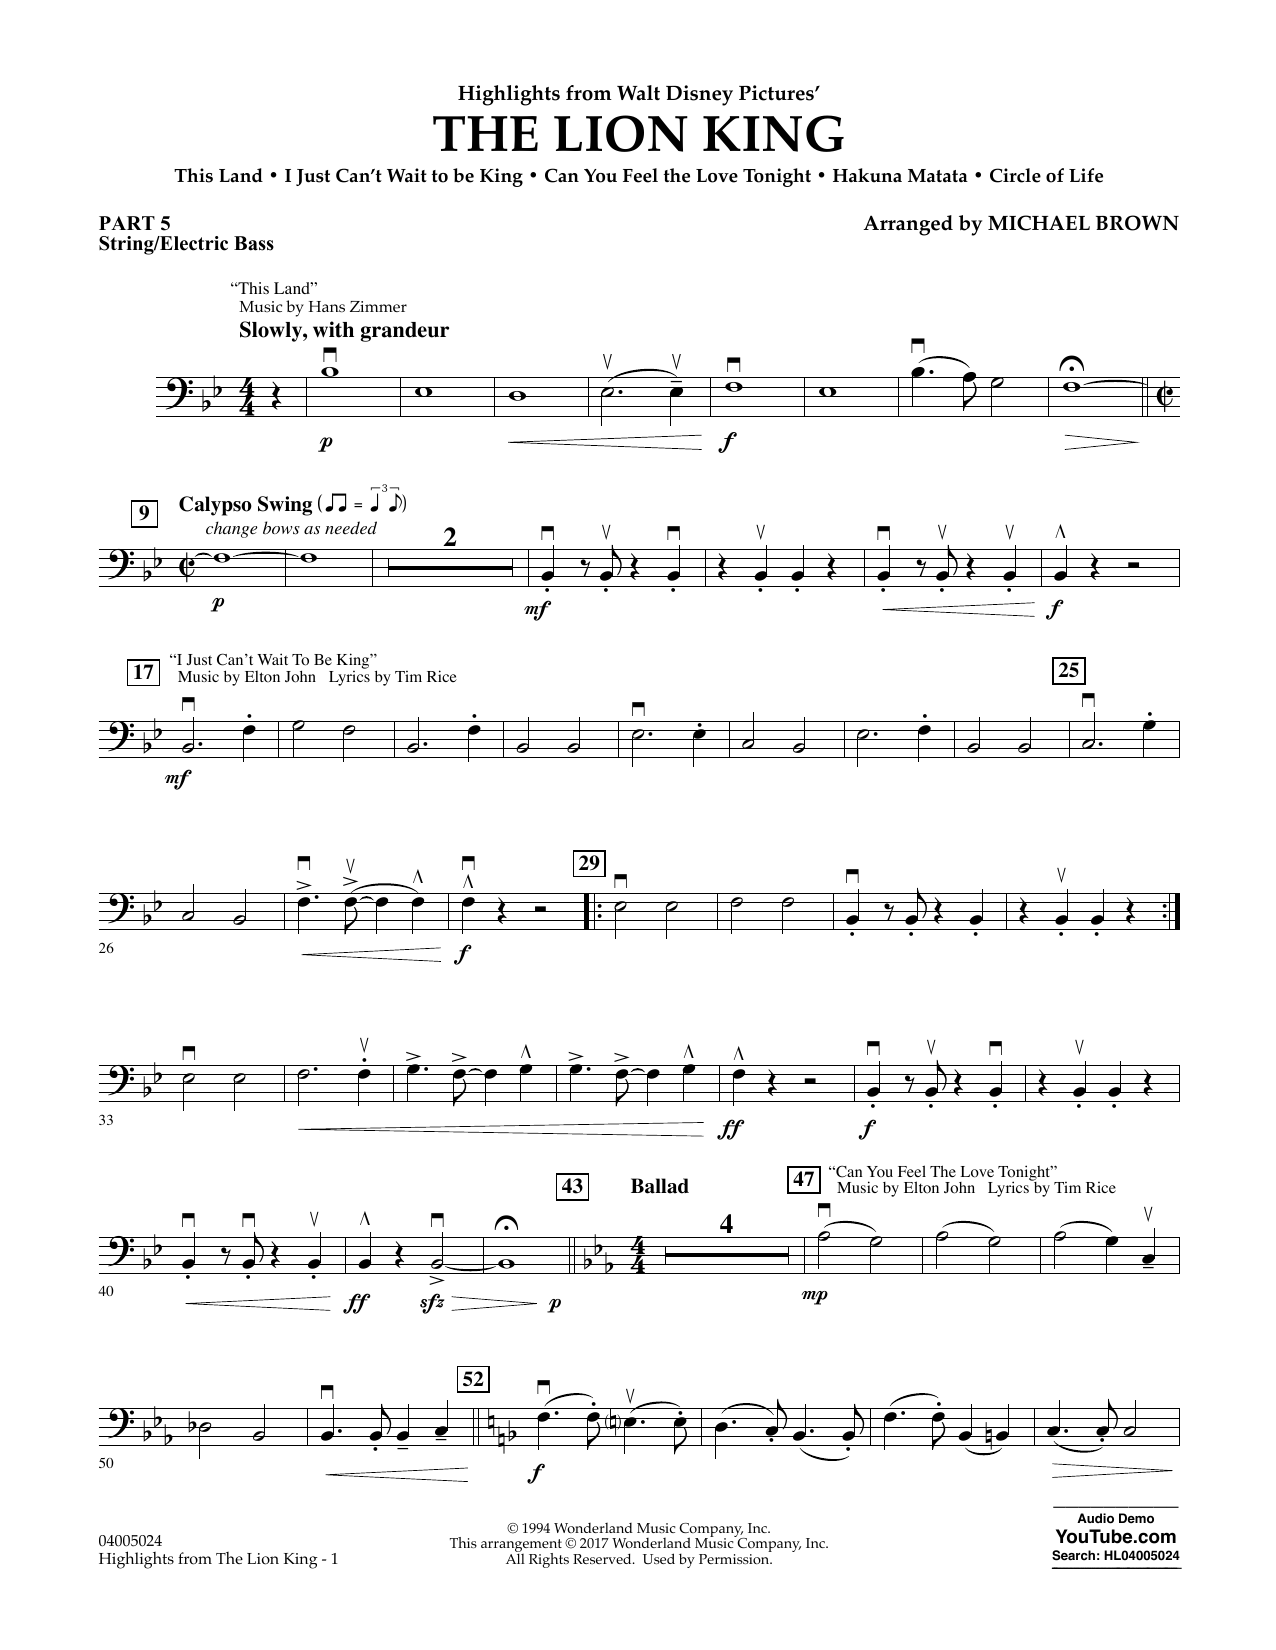 Highlights from The Lion King - Pt.5 - String/Electric Bass Sheet Music